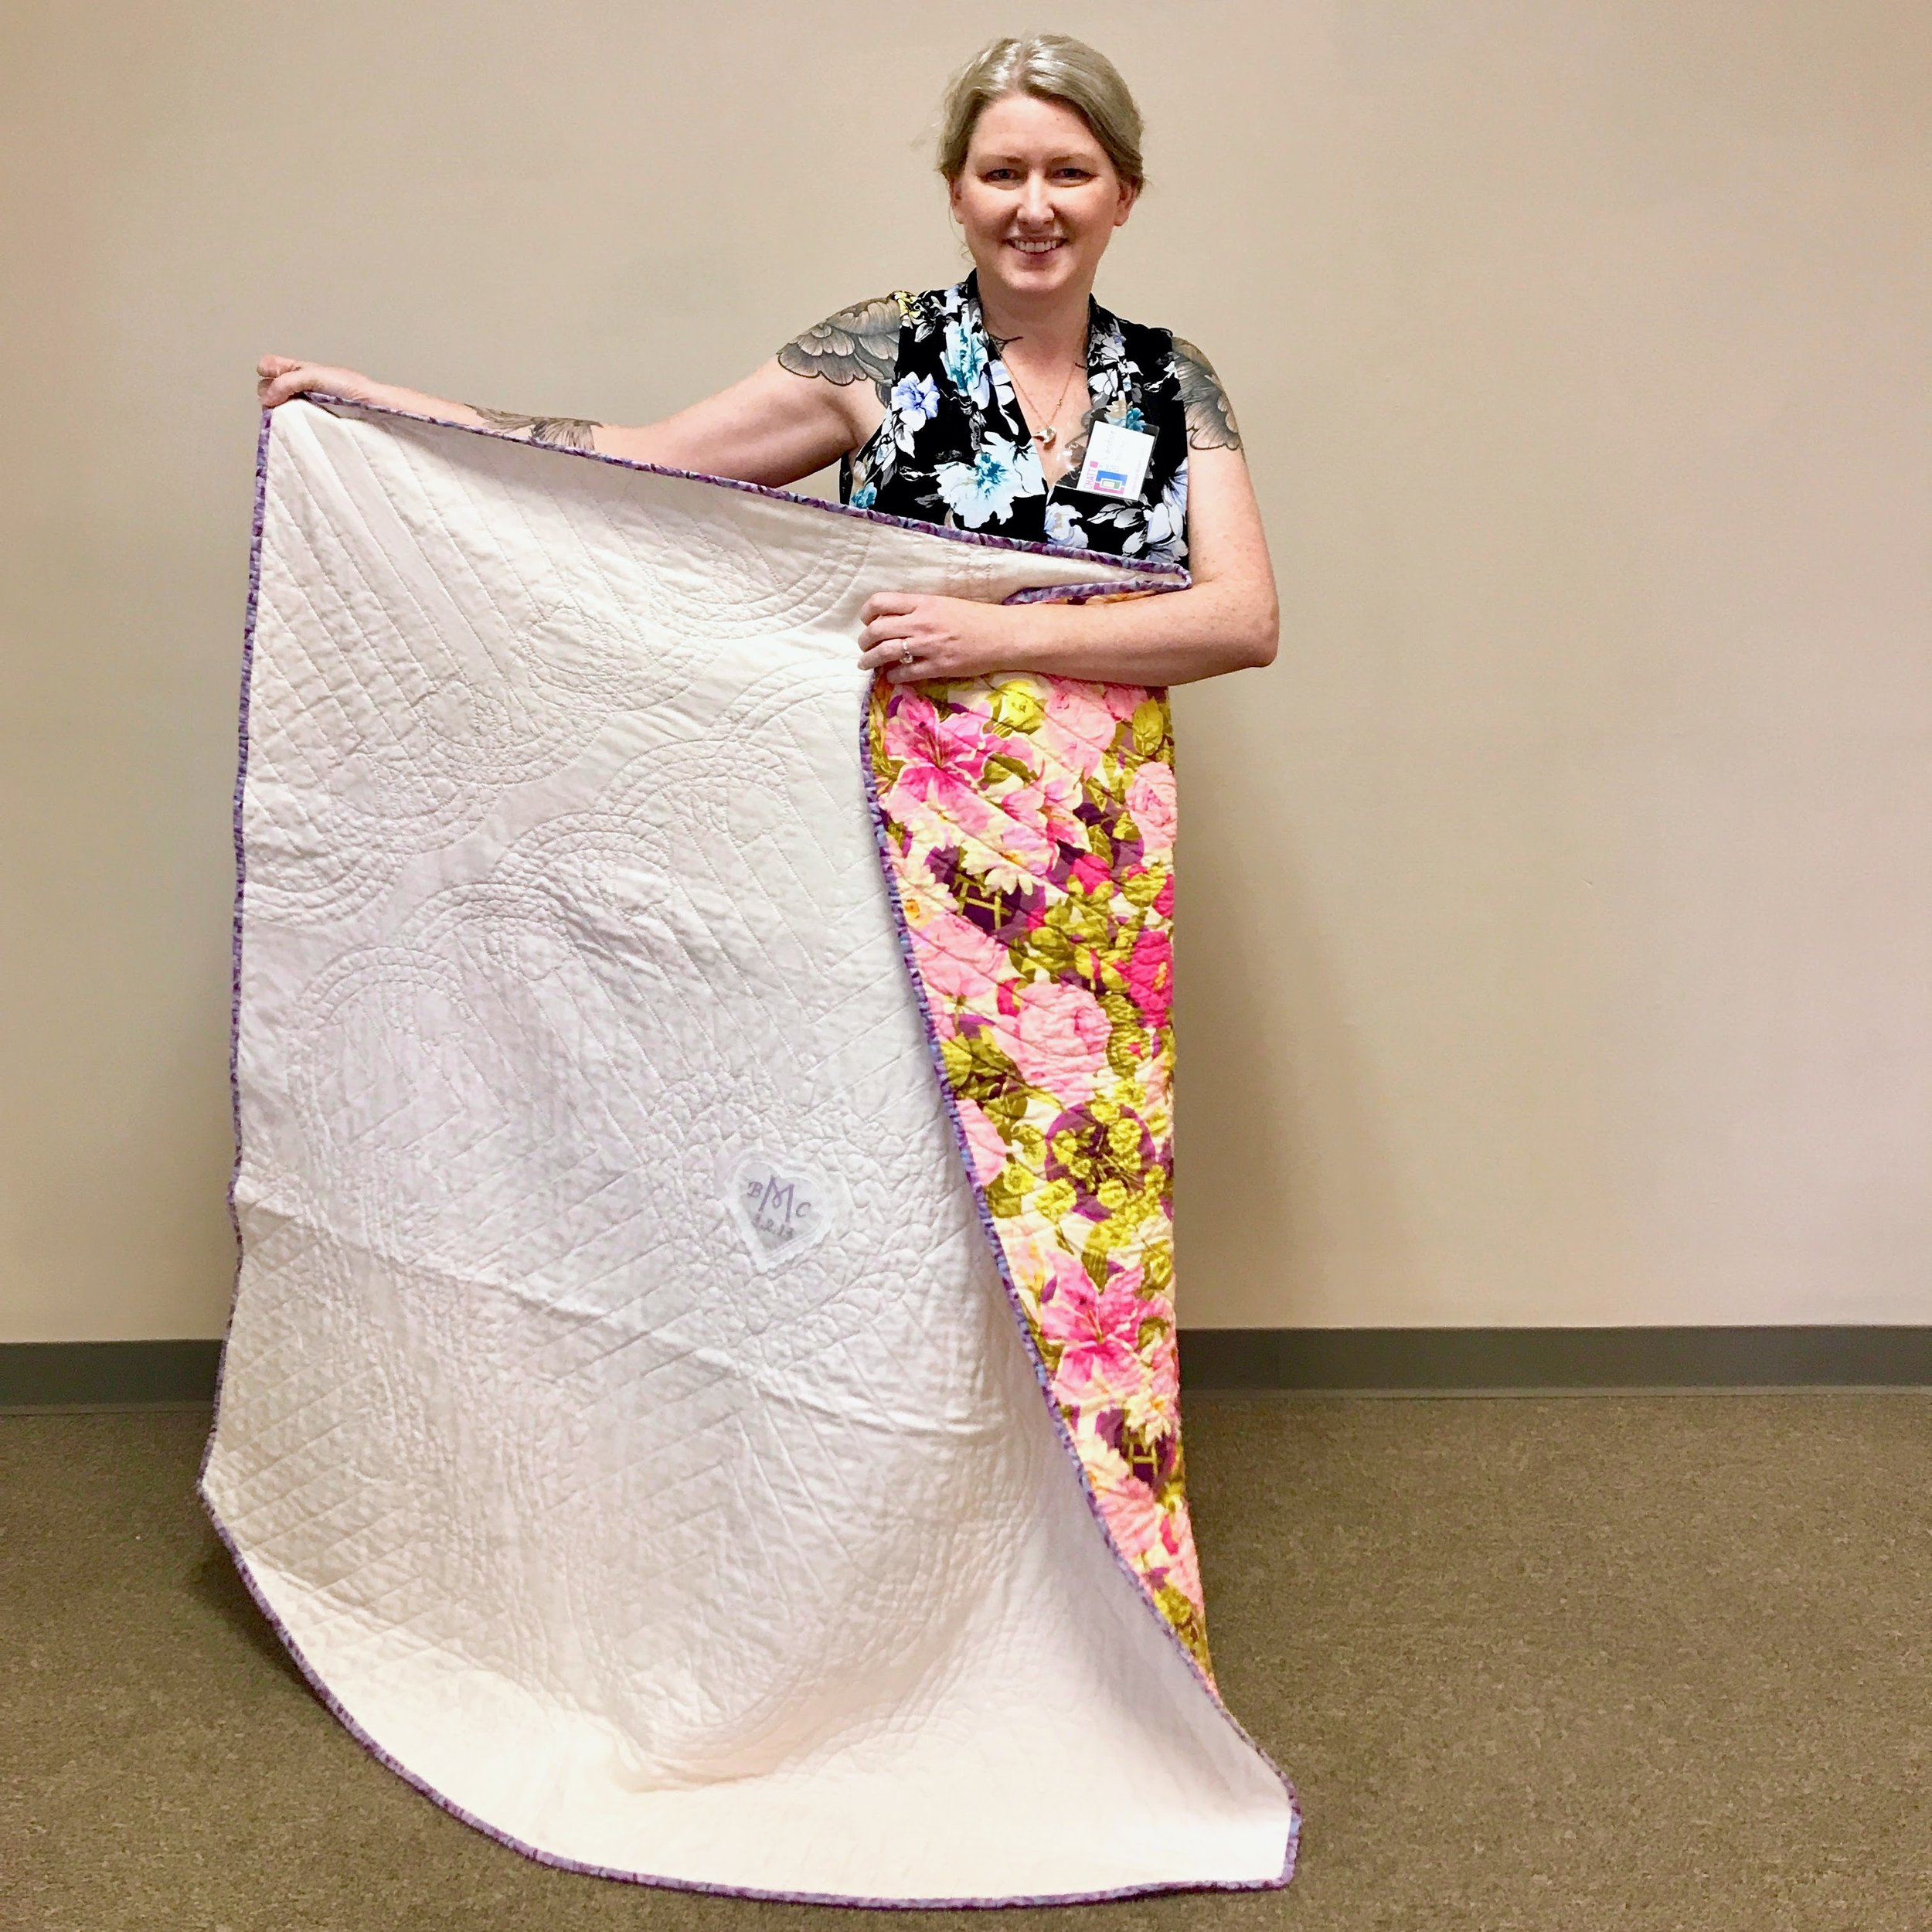 Candice Murray quilted a piece of the train from her silk wedding dress.